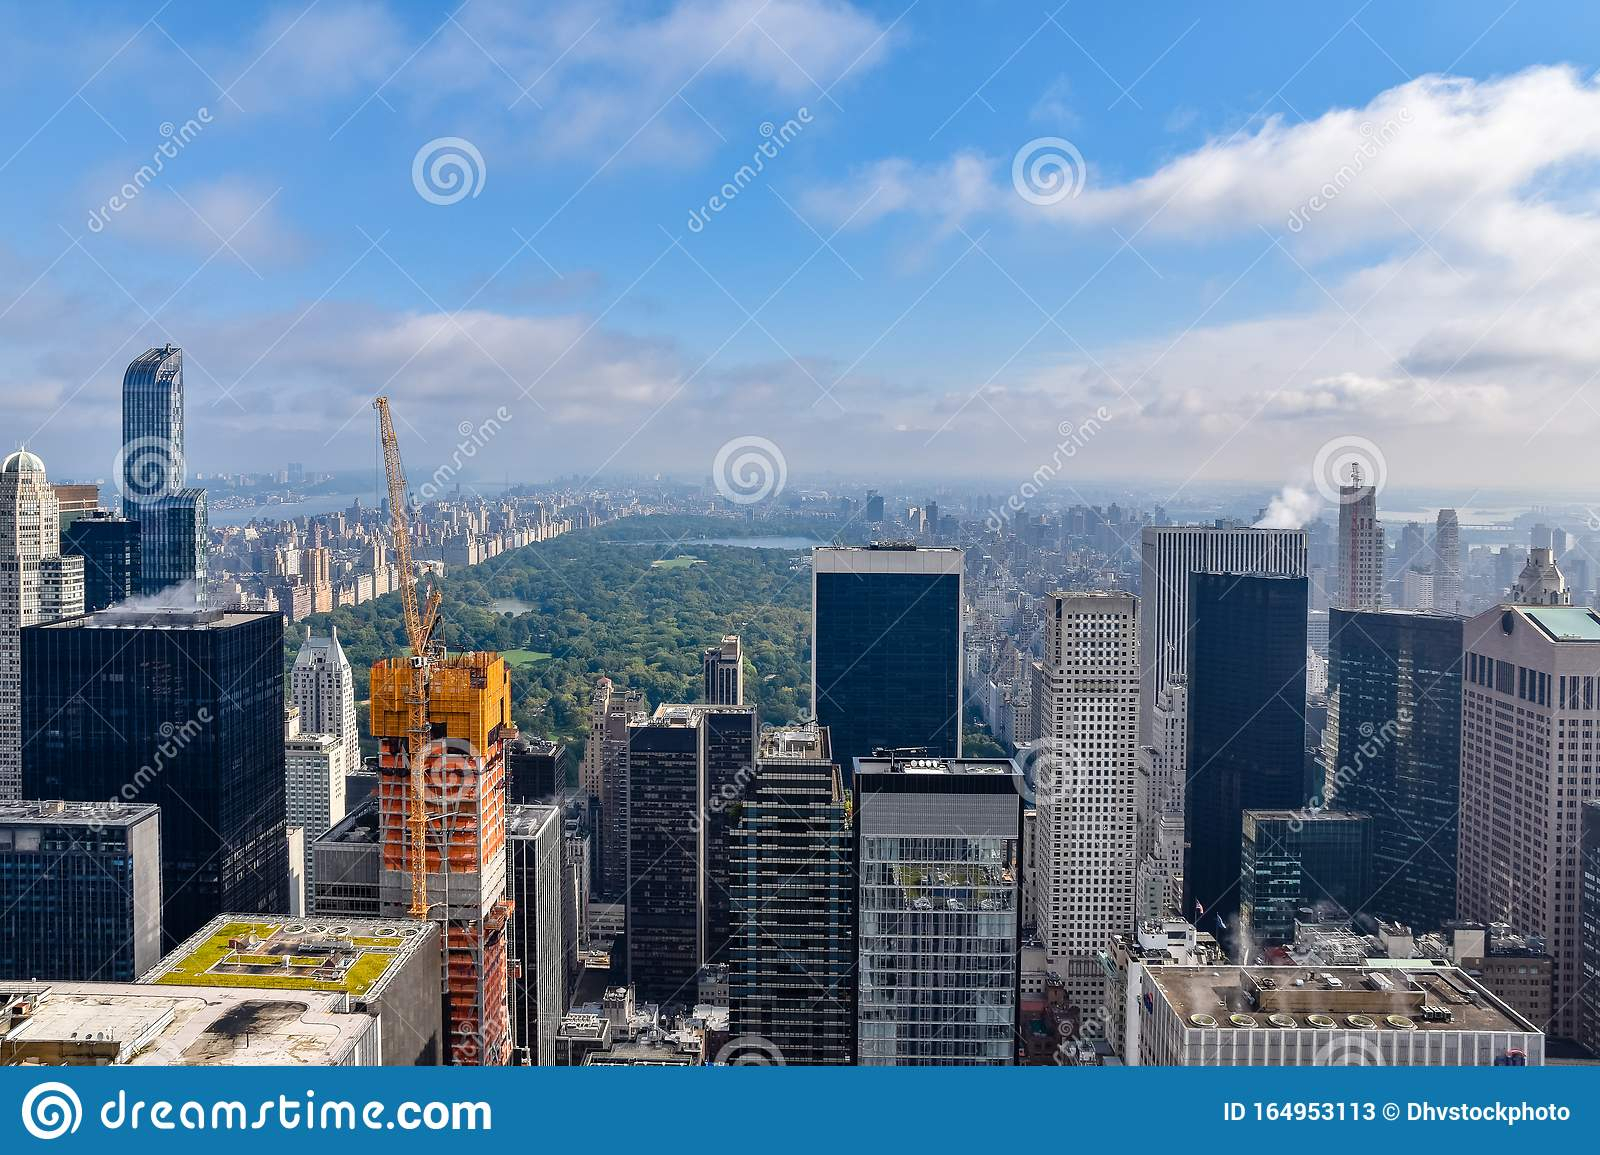 Aerial View Of New York With Skyscrapers Buildings In